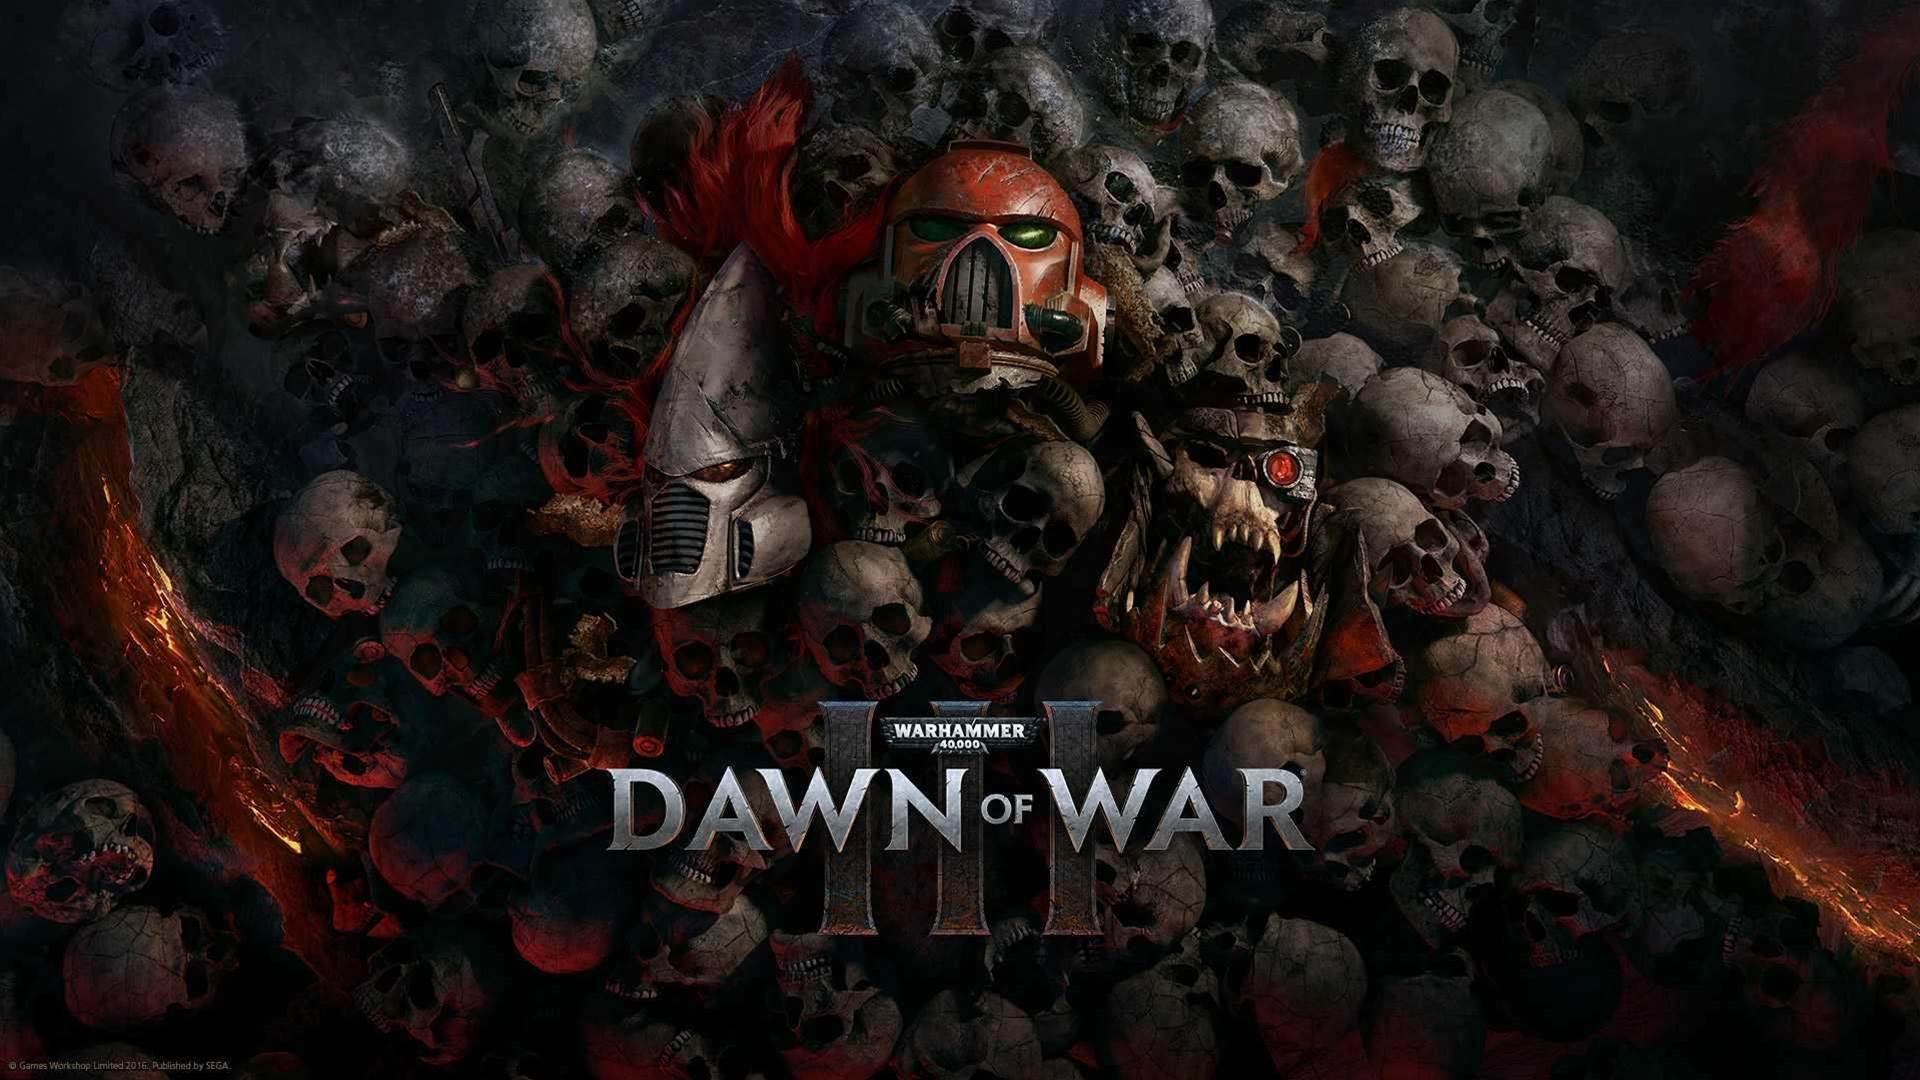 E3 2016 - Warhammer 40,000: Dawn of War 3 screens